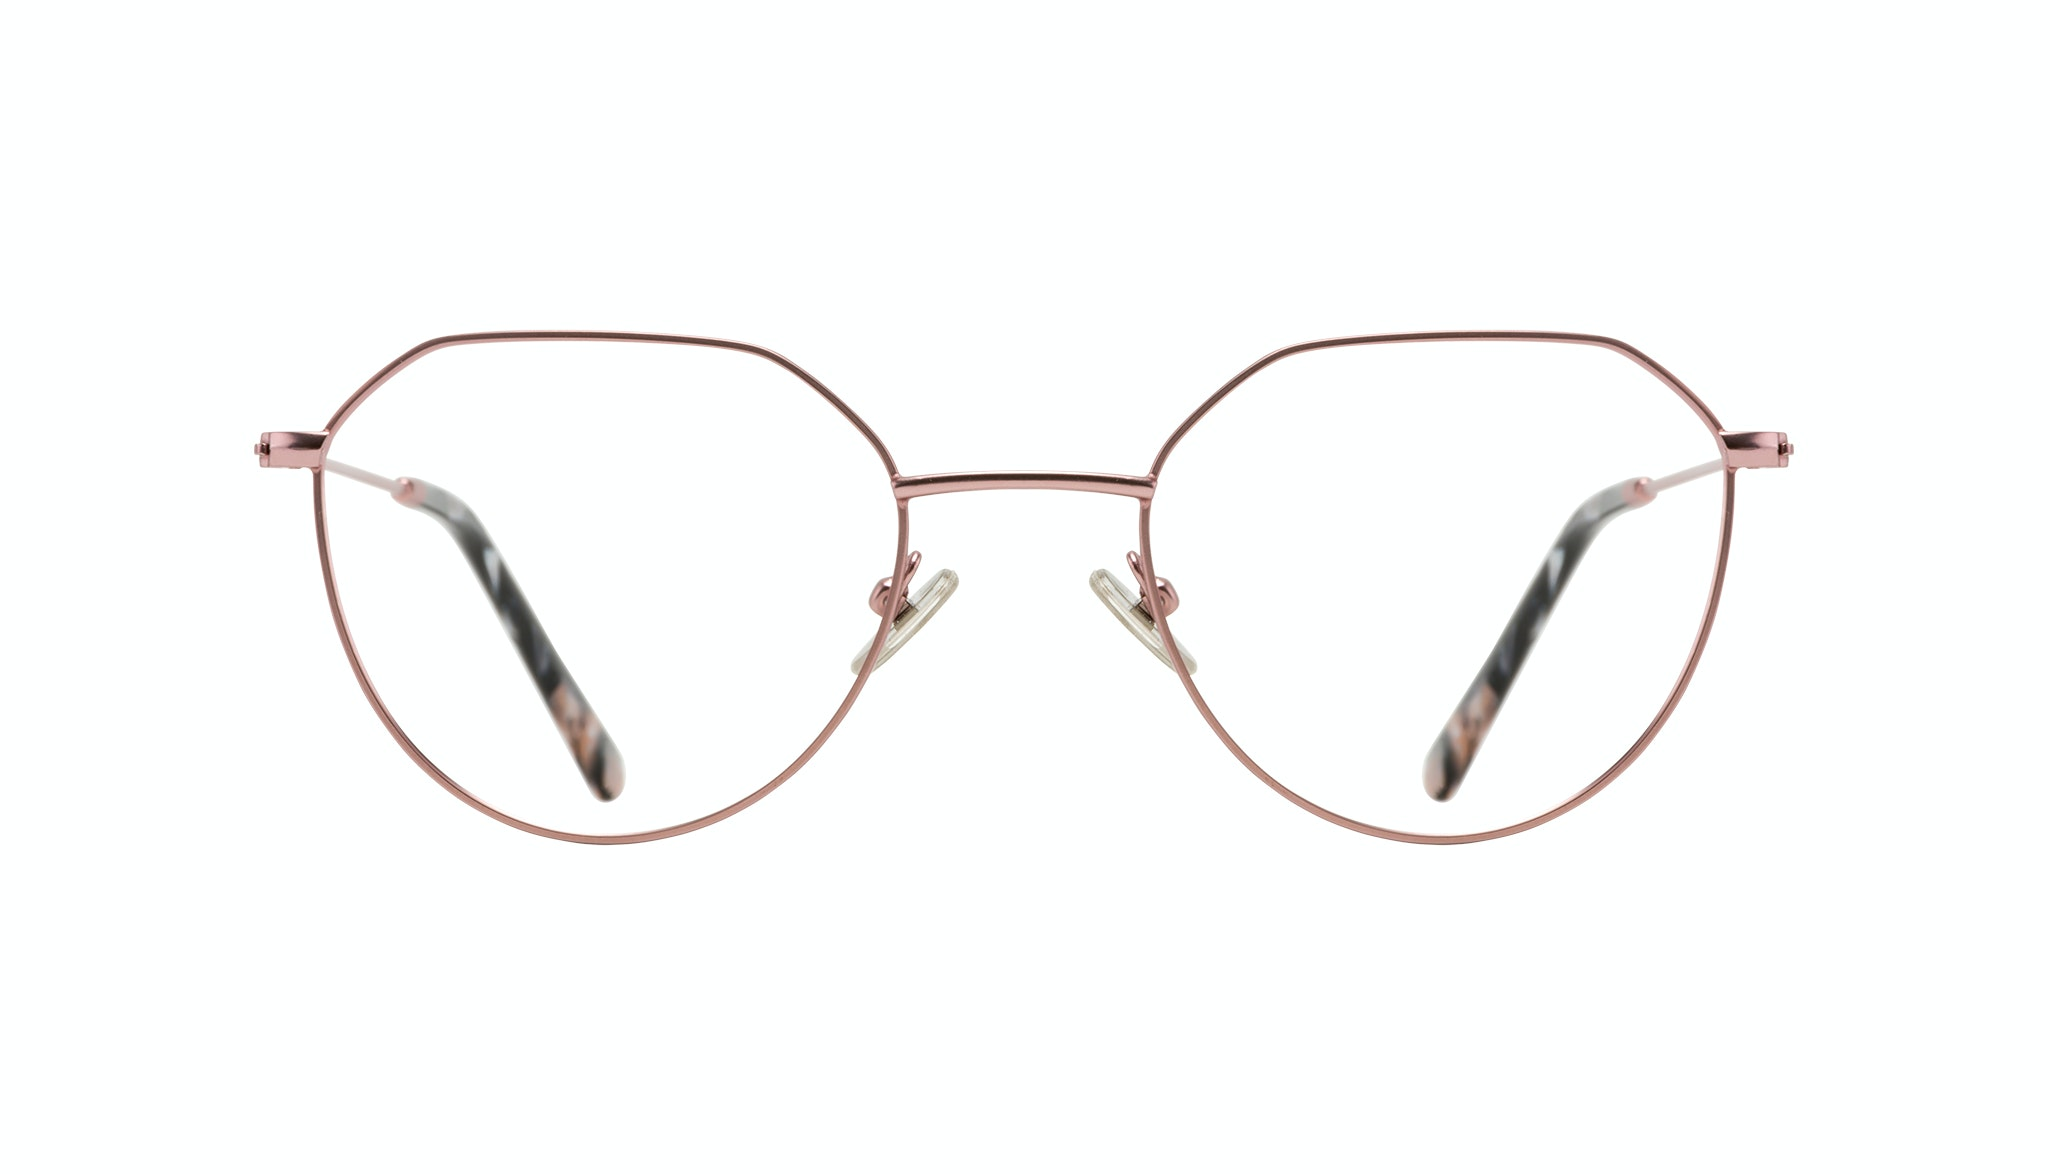 Affordable Fashion Glasses Round Eyeglasses Women Prism Blush